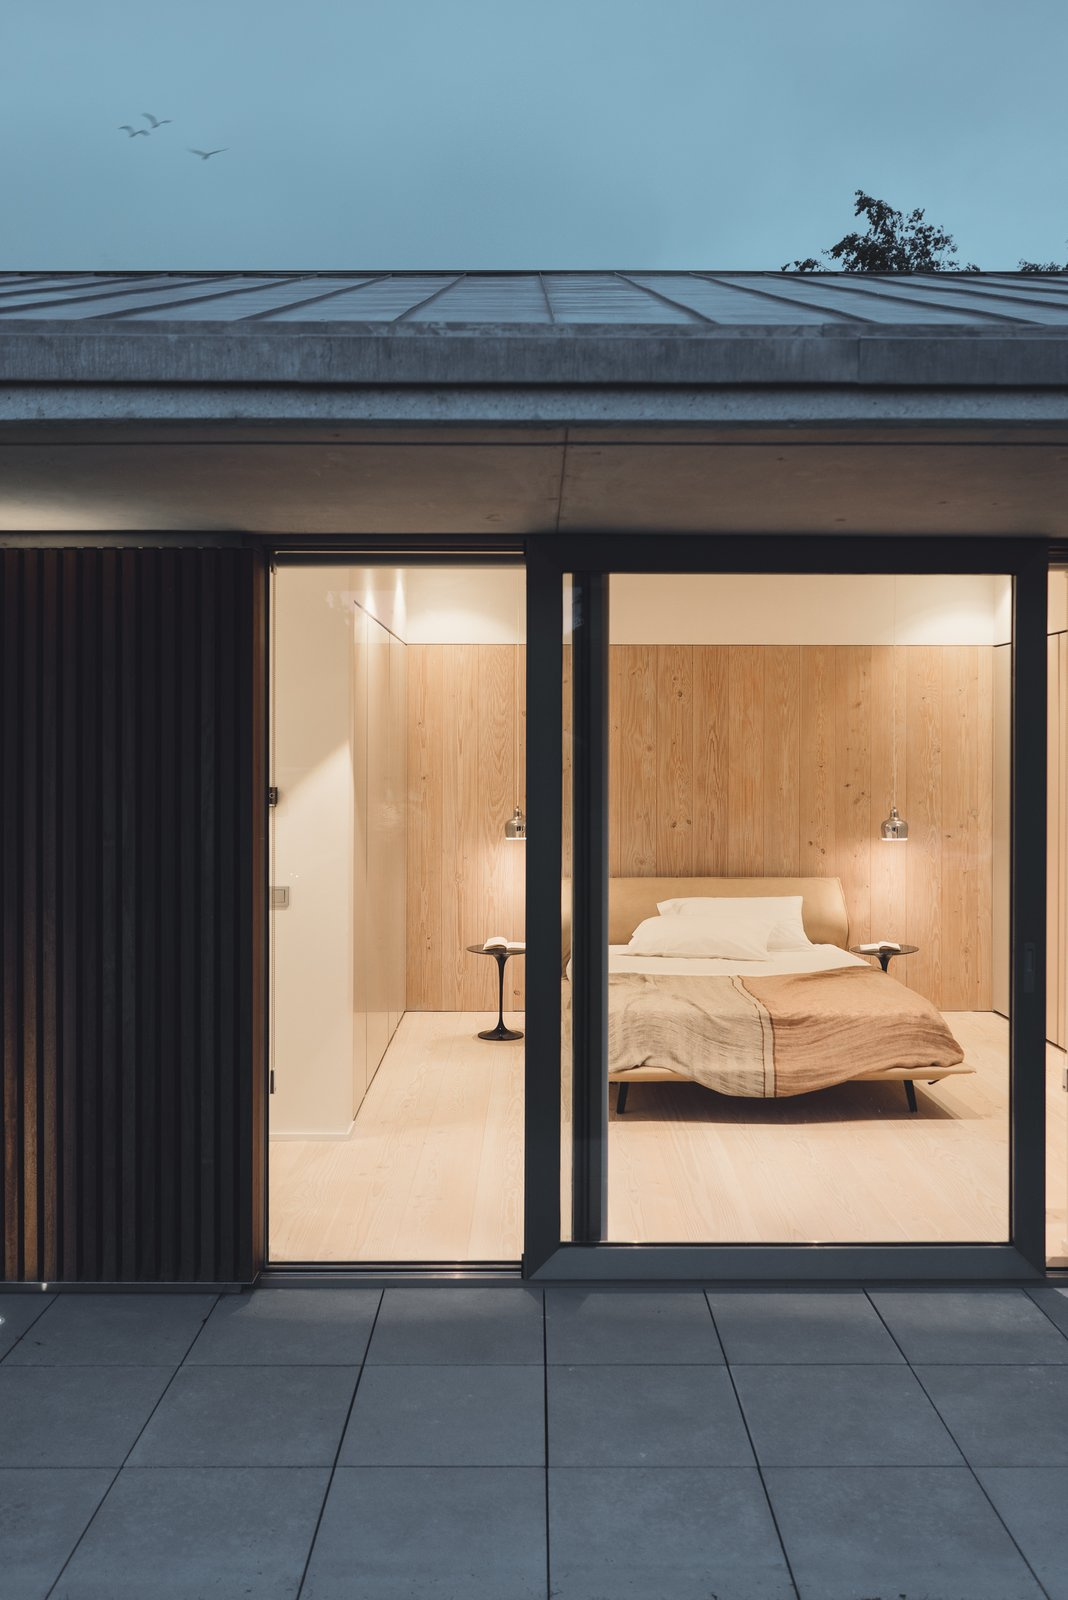 Bedroom, Bed, Night Stands, Pendant Lighting, Ceiling Lighting, and Light Hardwood Floor  The Öcher House by MLMR Architecture Consultancy